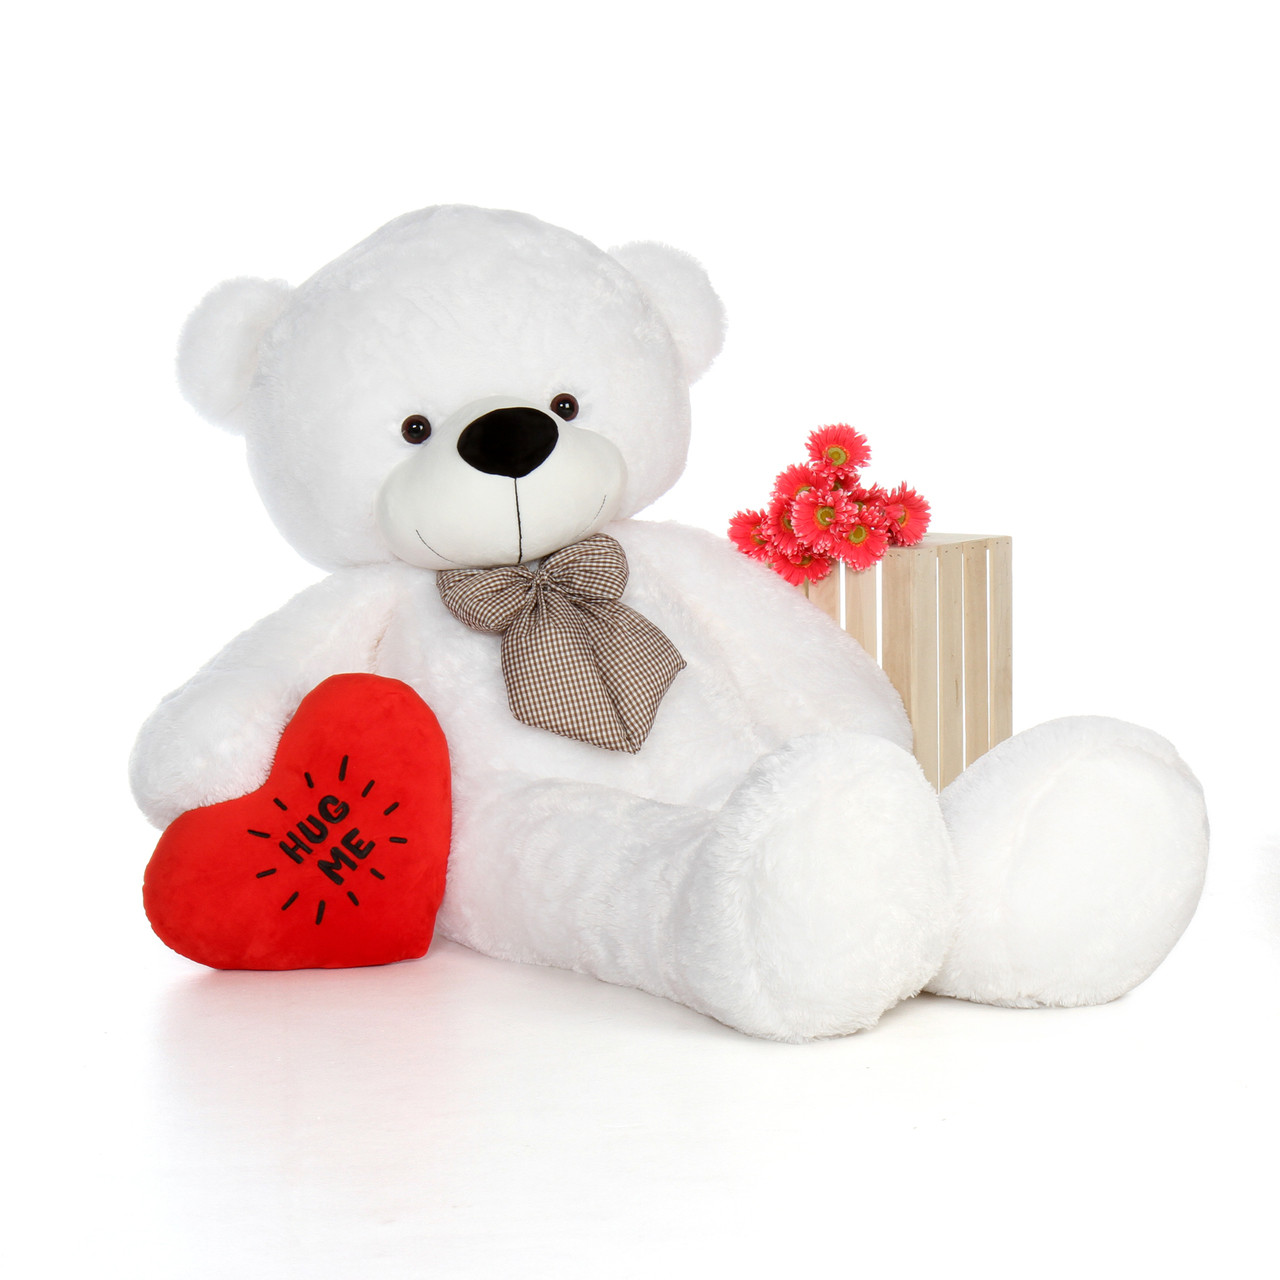 6ft Coco Cuddles White Giant Teddy Bear with a Red Hug Me Heart pillow